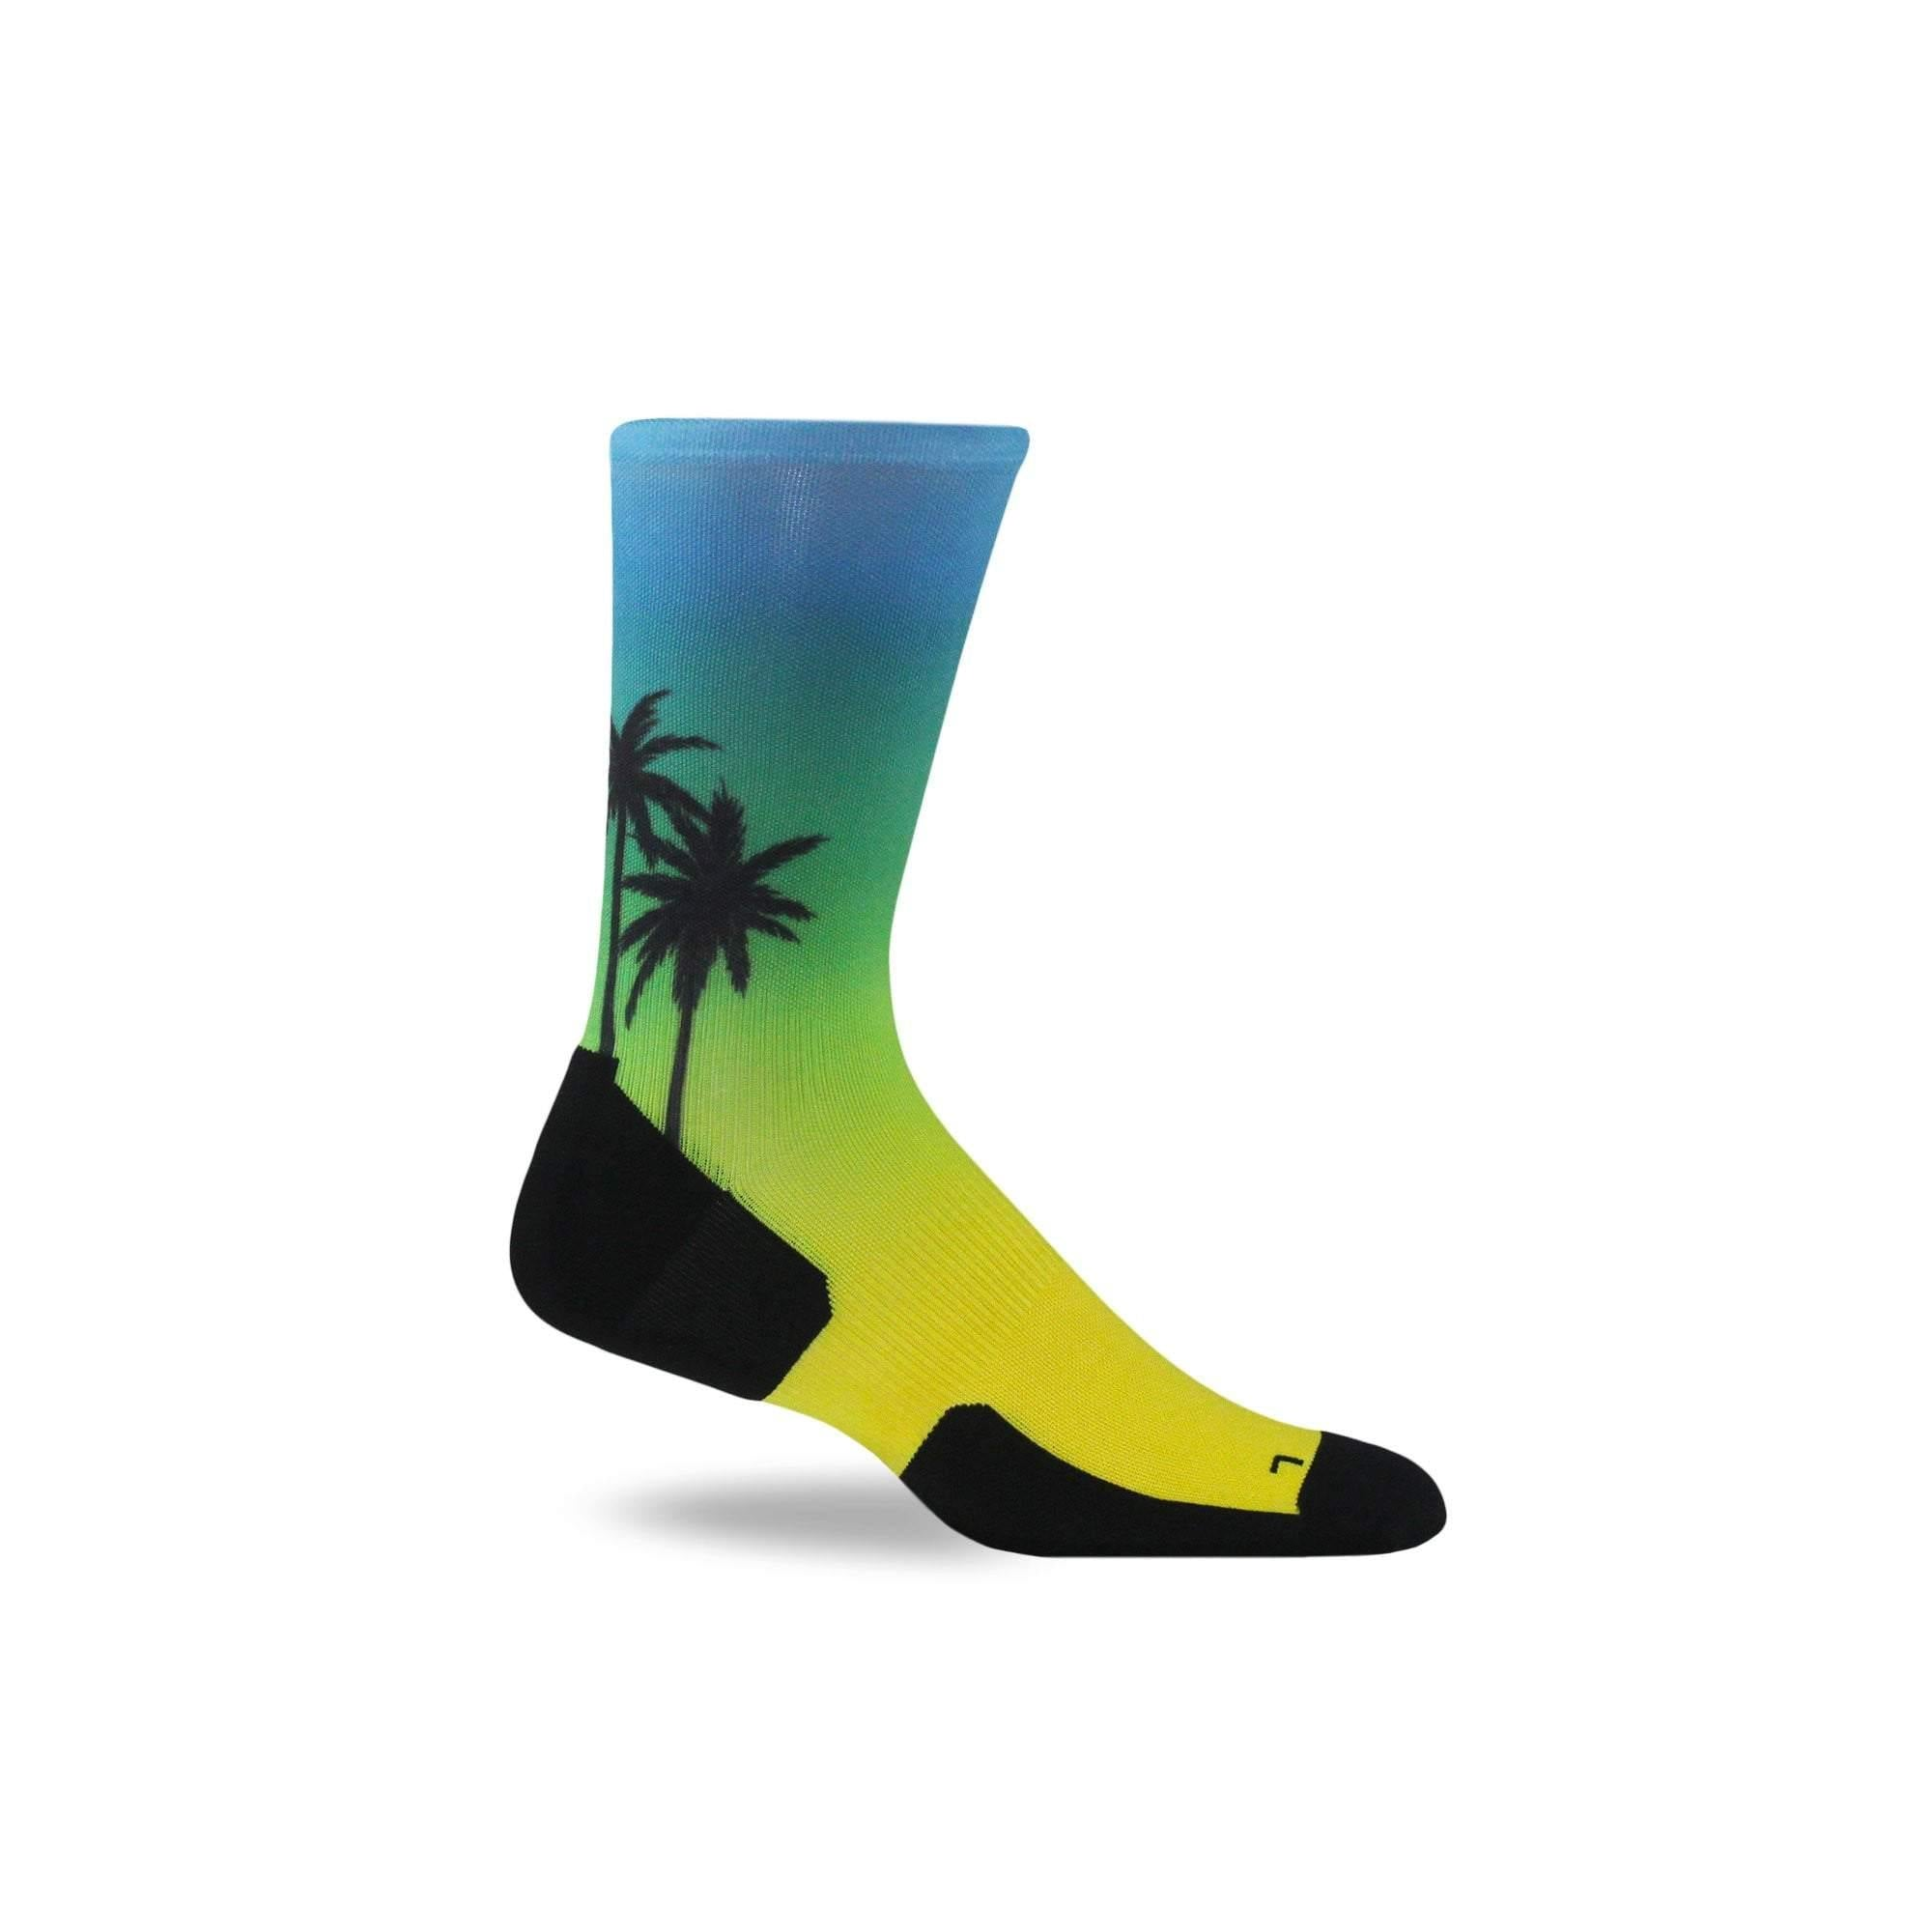 Beach, Please Run Crew - Graduated Compression Socks